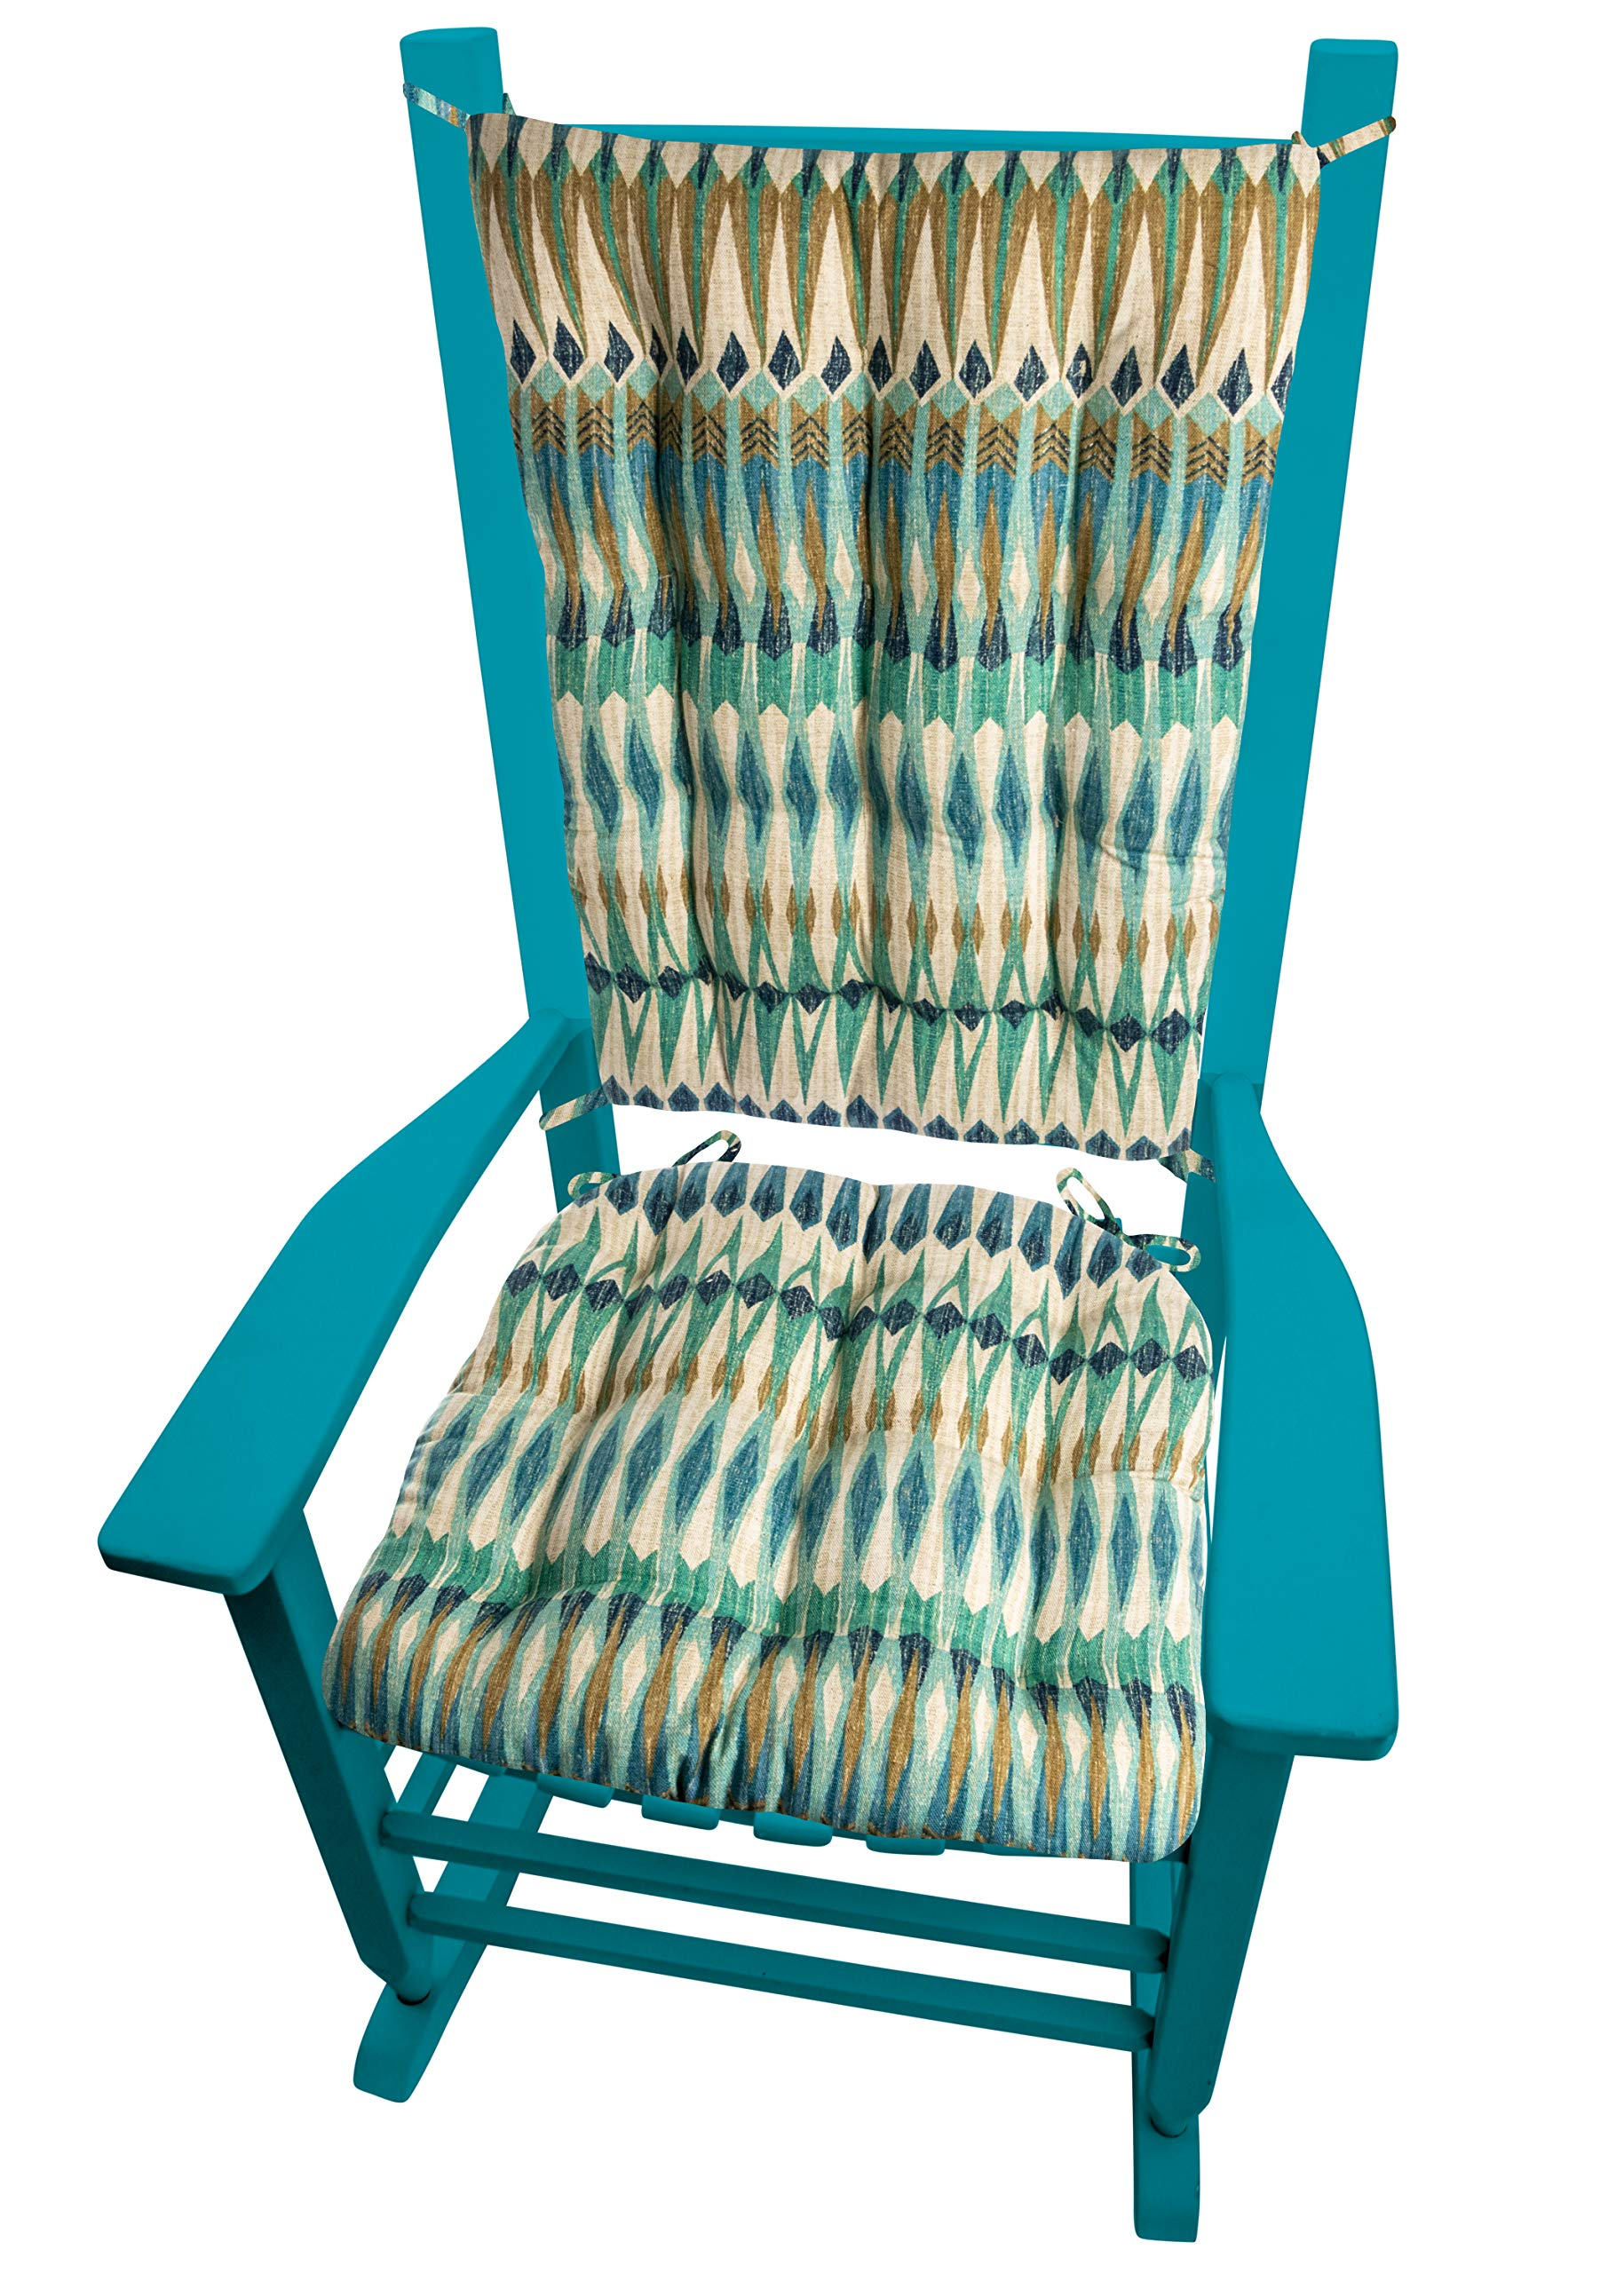 Barnett Products Southwest Arapaho Rocking Chair Cushions - Size Extra-Large - Seat Cushion and Back Rest - Latex Foam Fill (Presidential, Green/Teal Eagle Feathers) by Barnett Products (Image #3)